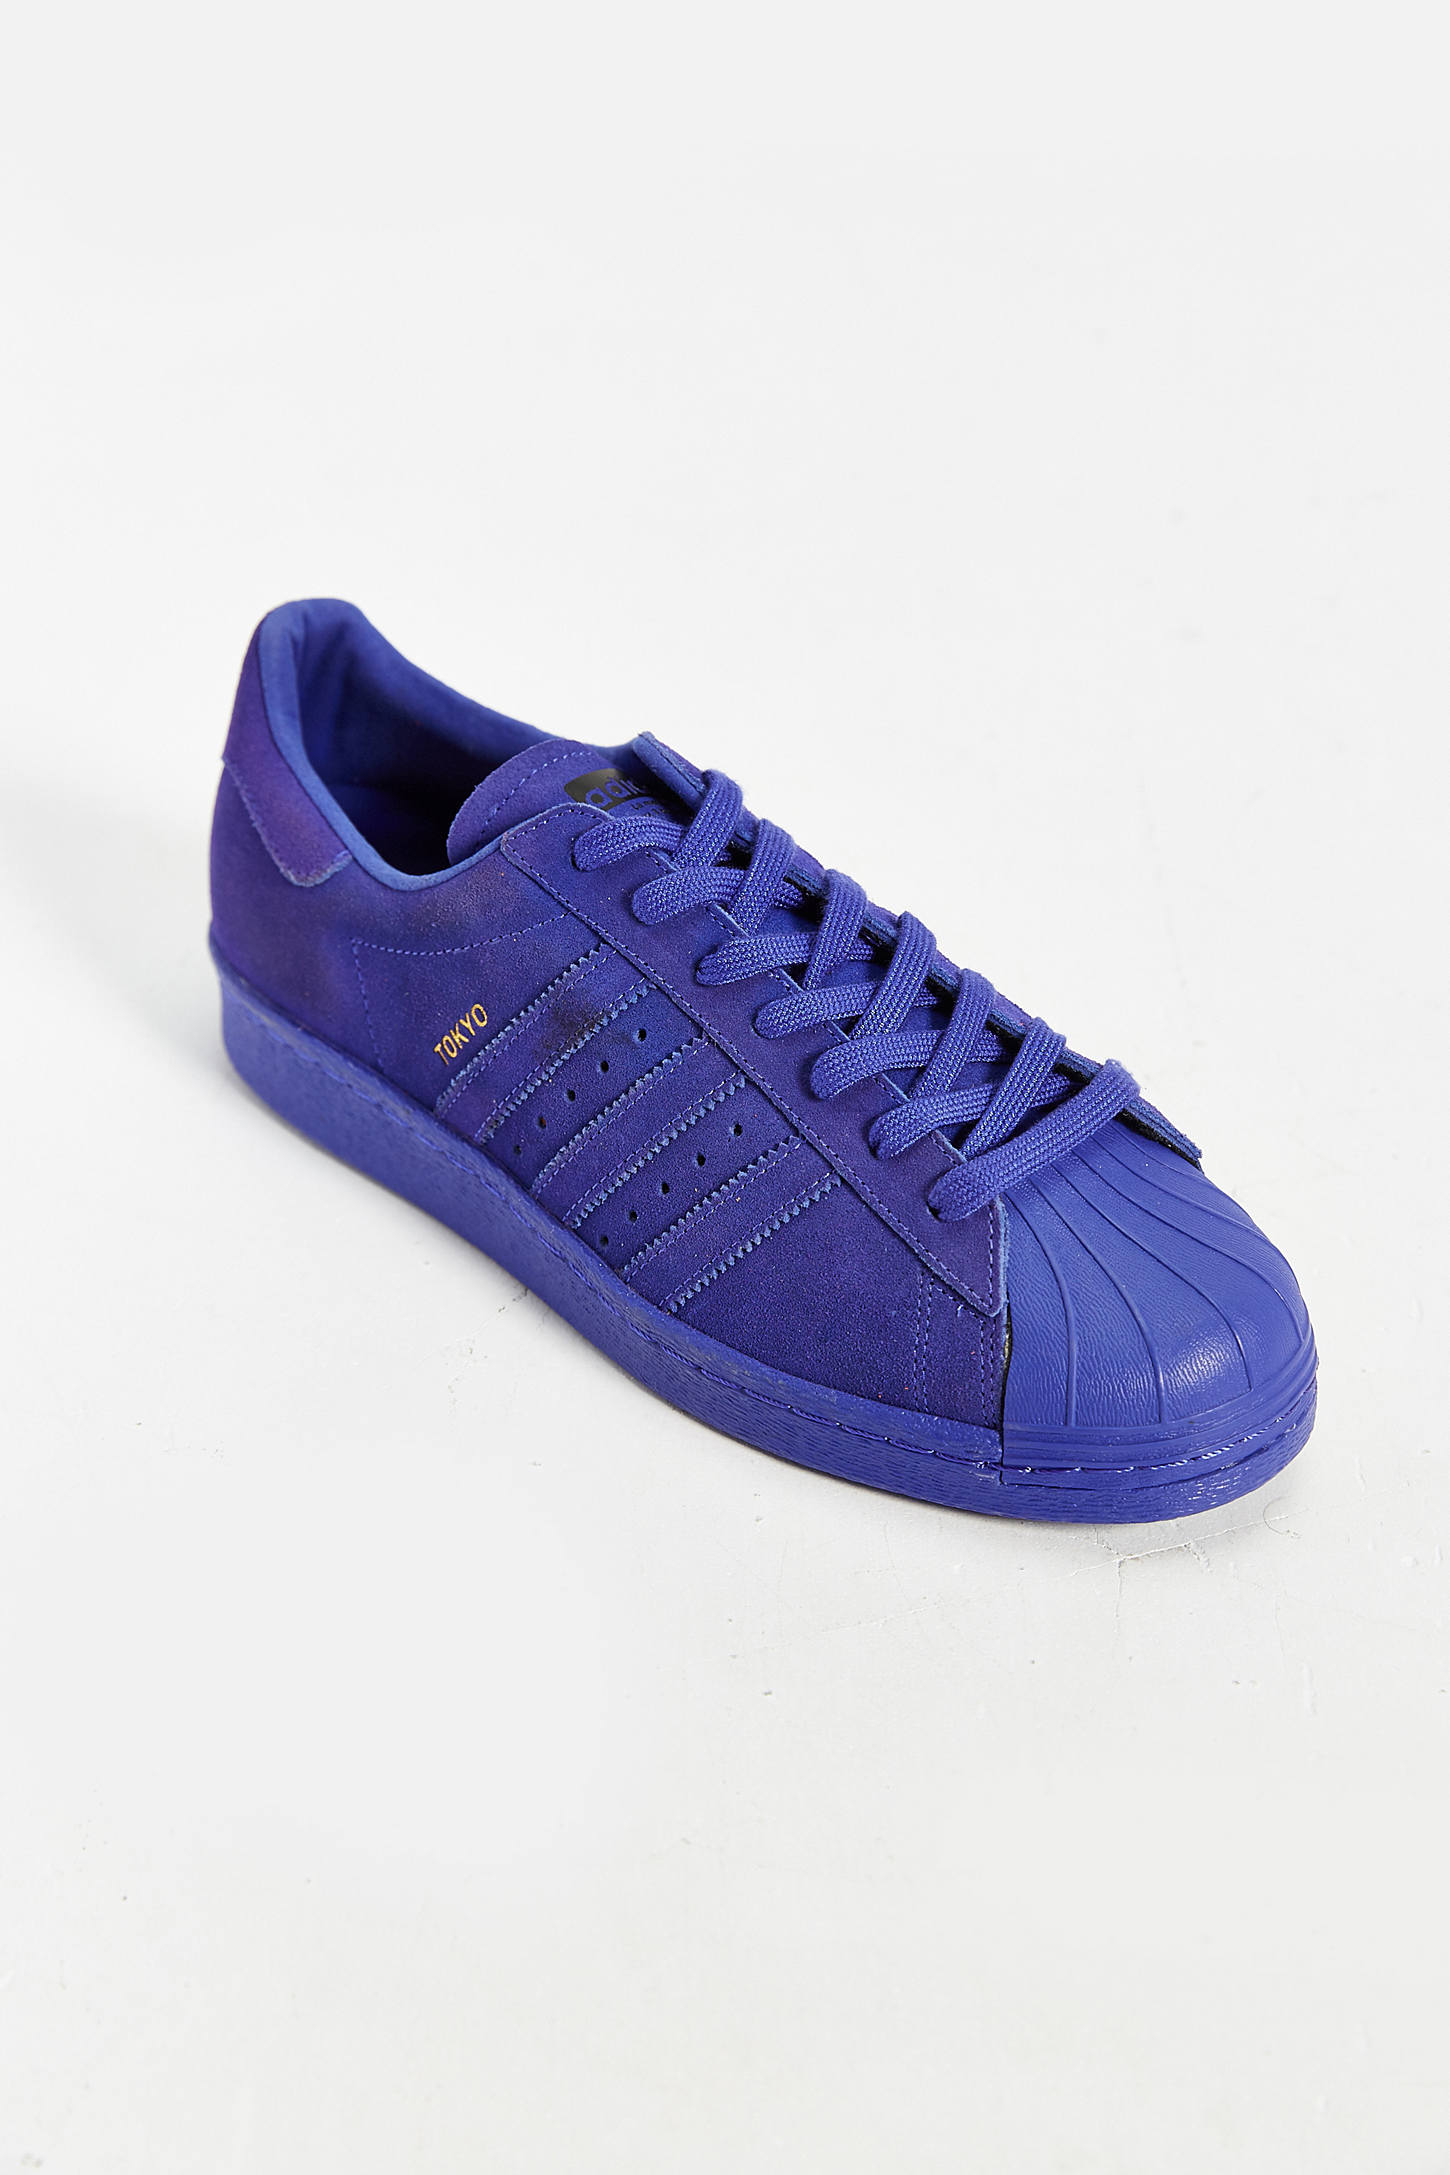 Adidas Originals Tokyo Outfitters Superstar '80s zapatilla Urban Outfitters Tokyo bb8c0d